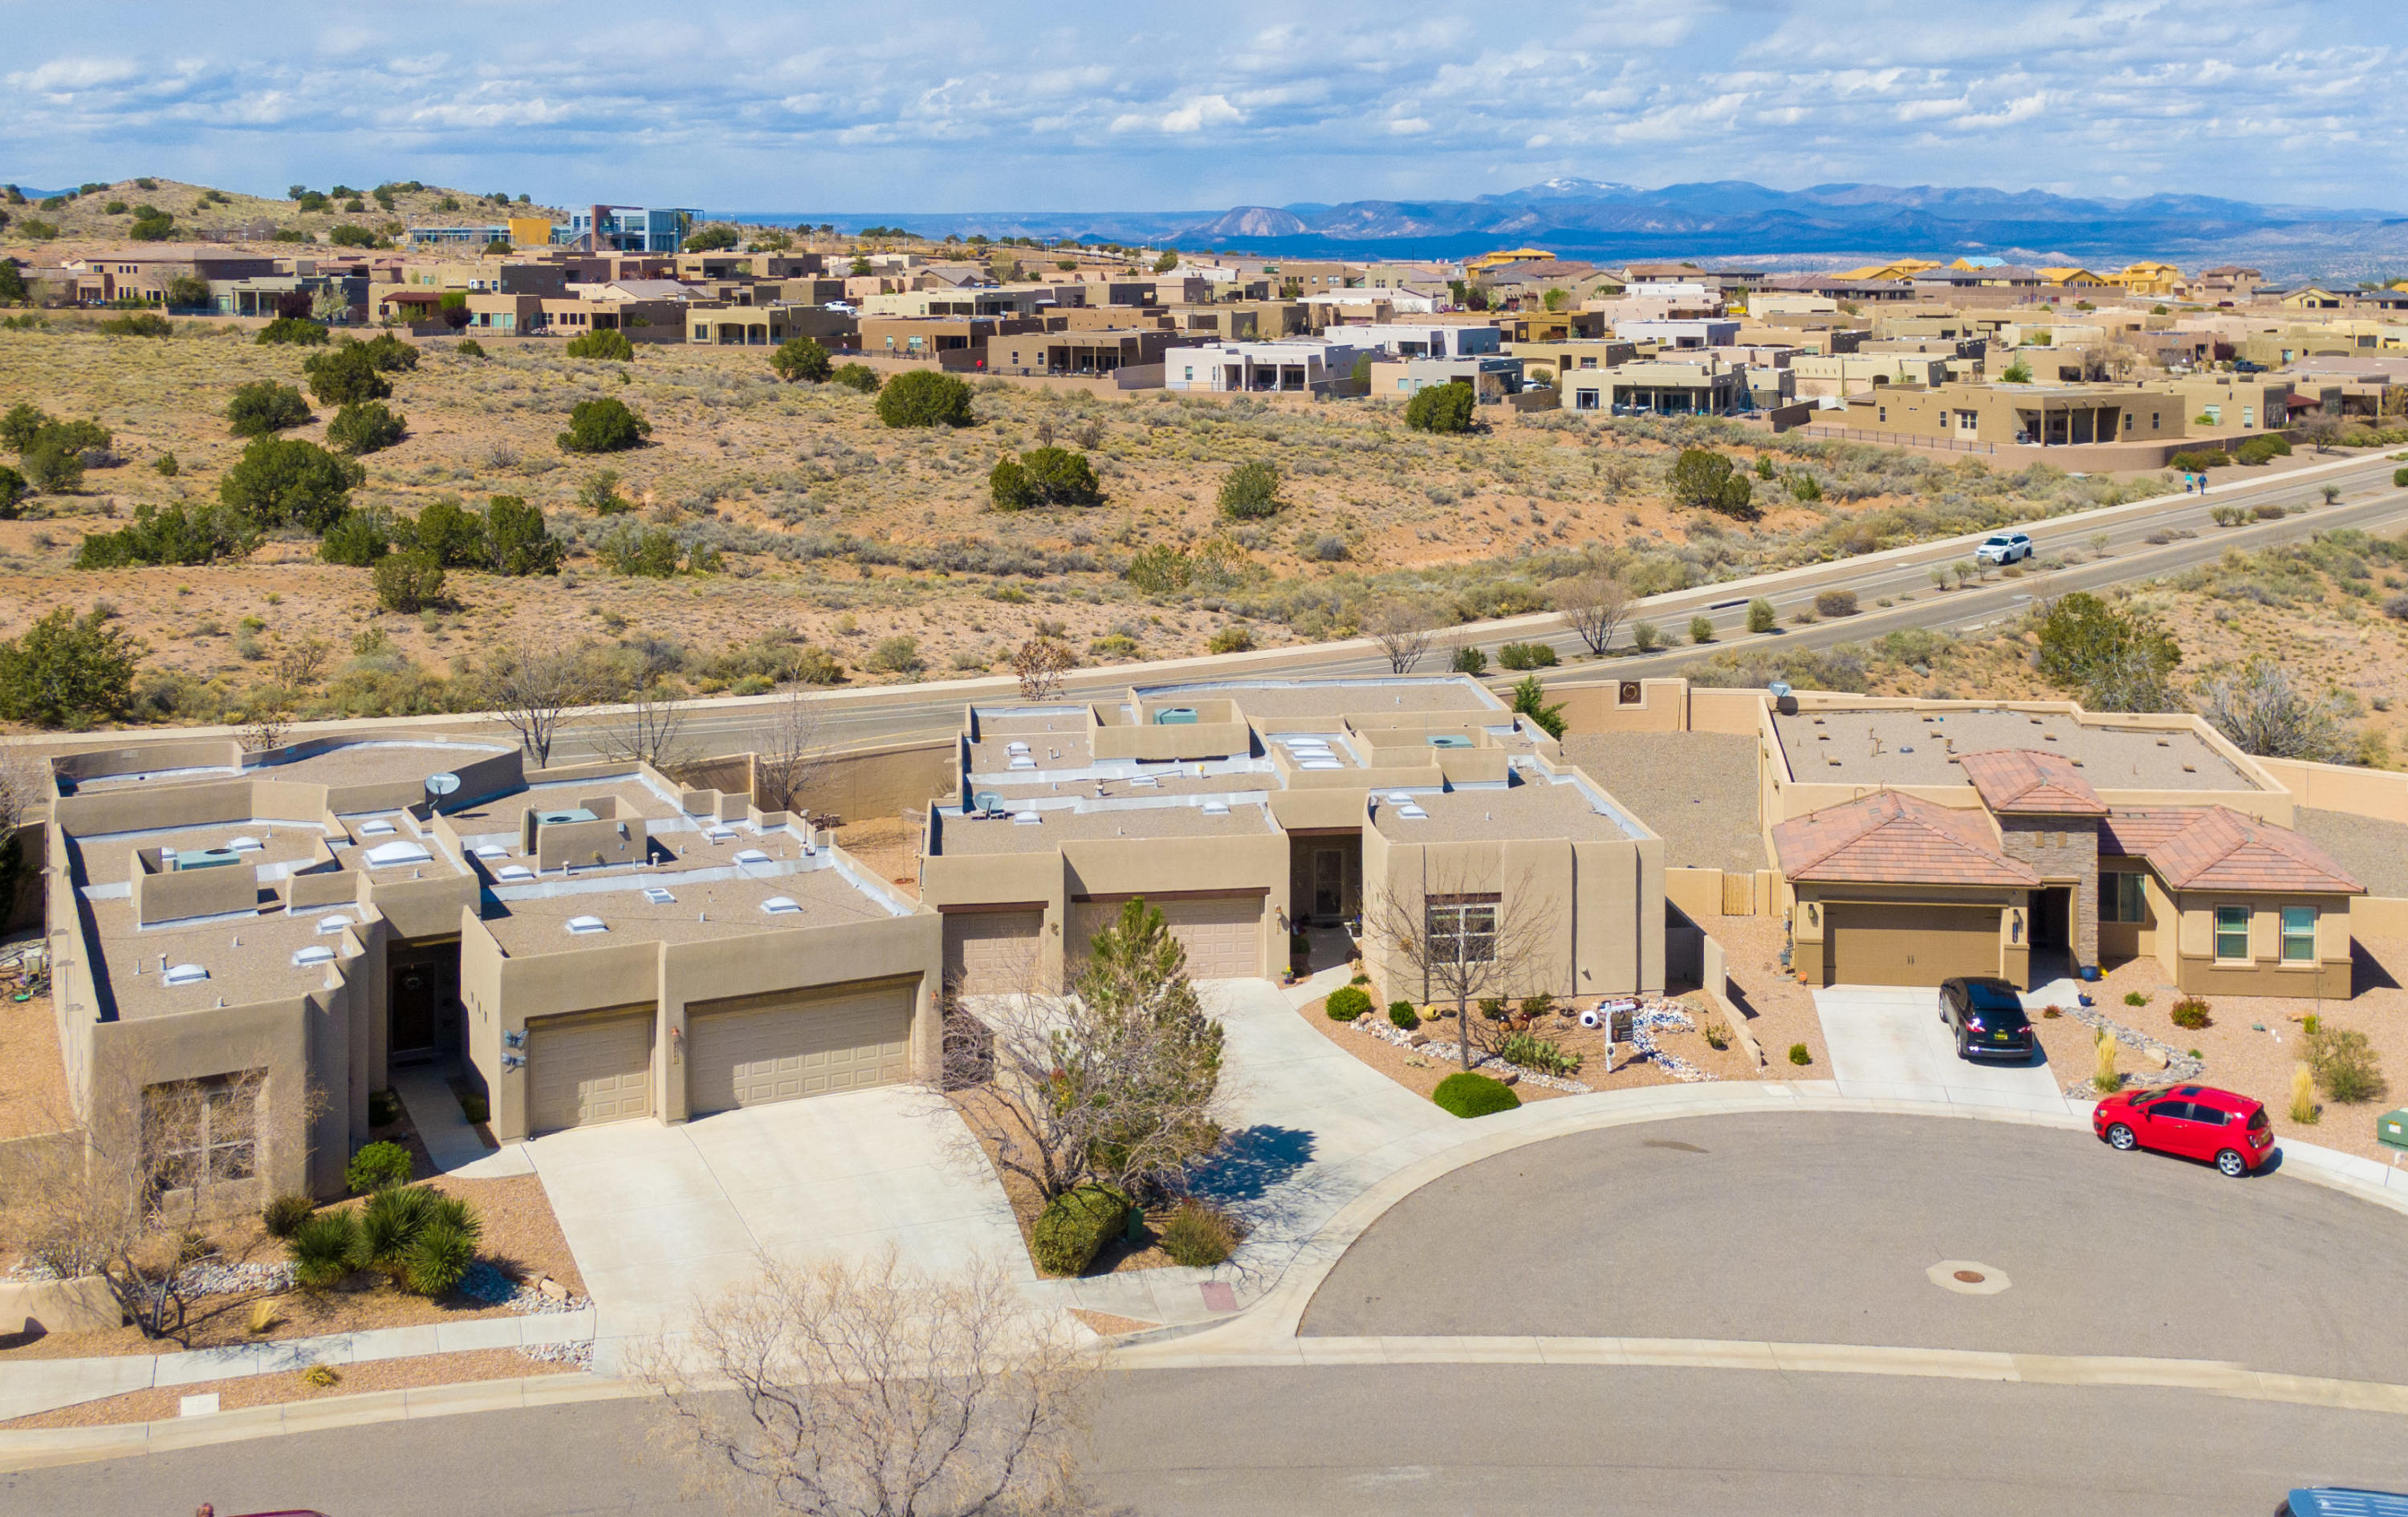 FABULOUS SCOTT PATRICK HOME MOVE IN READY!Check out our 3D and Video Tours! Home offers a versatile floor plan with many amenities and upgrades! Bright and open with lots of natural light. House features a Chef's Inspired Kitchen with granite counter tops and separate Island, Wide open entry! Multiple skylights throughout provide lots of natural light and brightness in all the rooms, especially the living and dining rooms! Lots of windows! *2018 New Dishwasher, Stove, Garbage Disposal, Washer/Dryer *2018 installed gas line for dryer *2018 Lots of Refrigerator *2019 Installed pull out shelves in most of the kitchen cabinets *2019 garden wall in backyard *2019 Installed Walk-in Shower with Fold Down Seat.